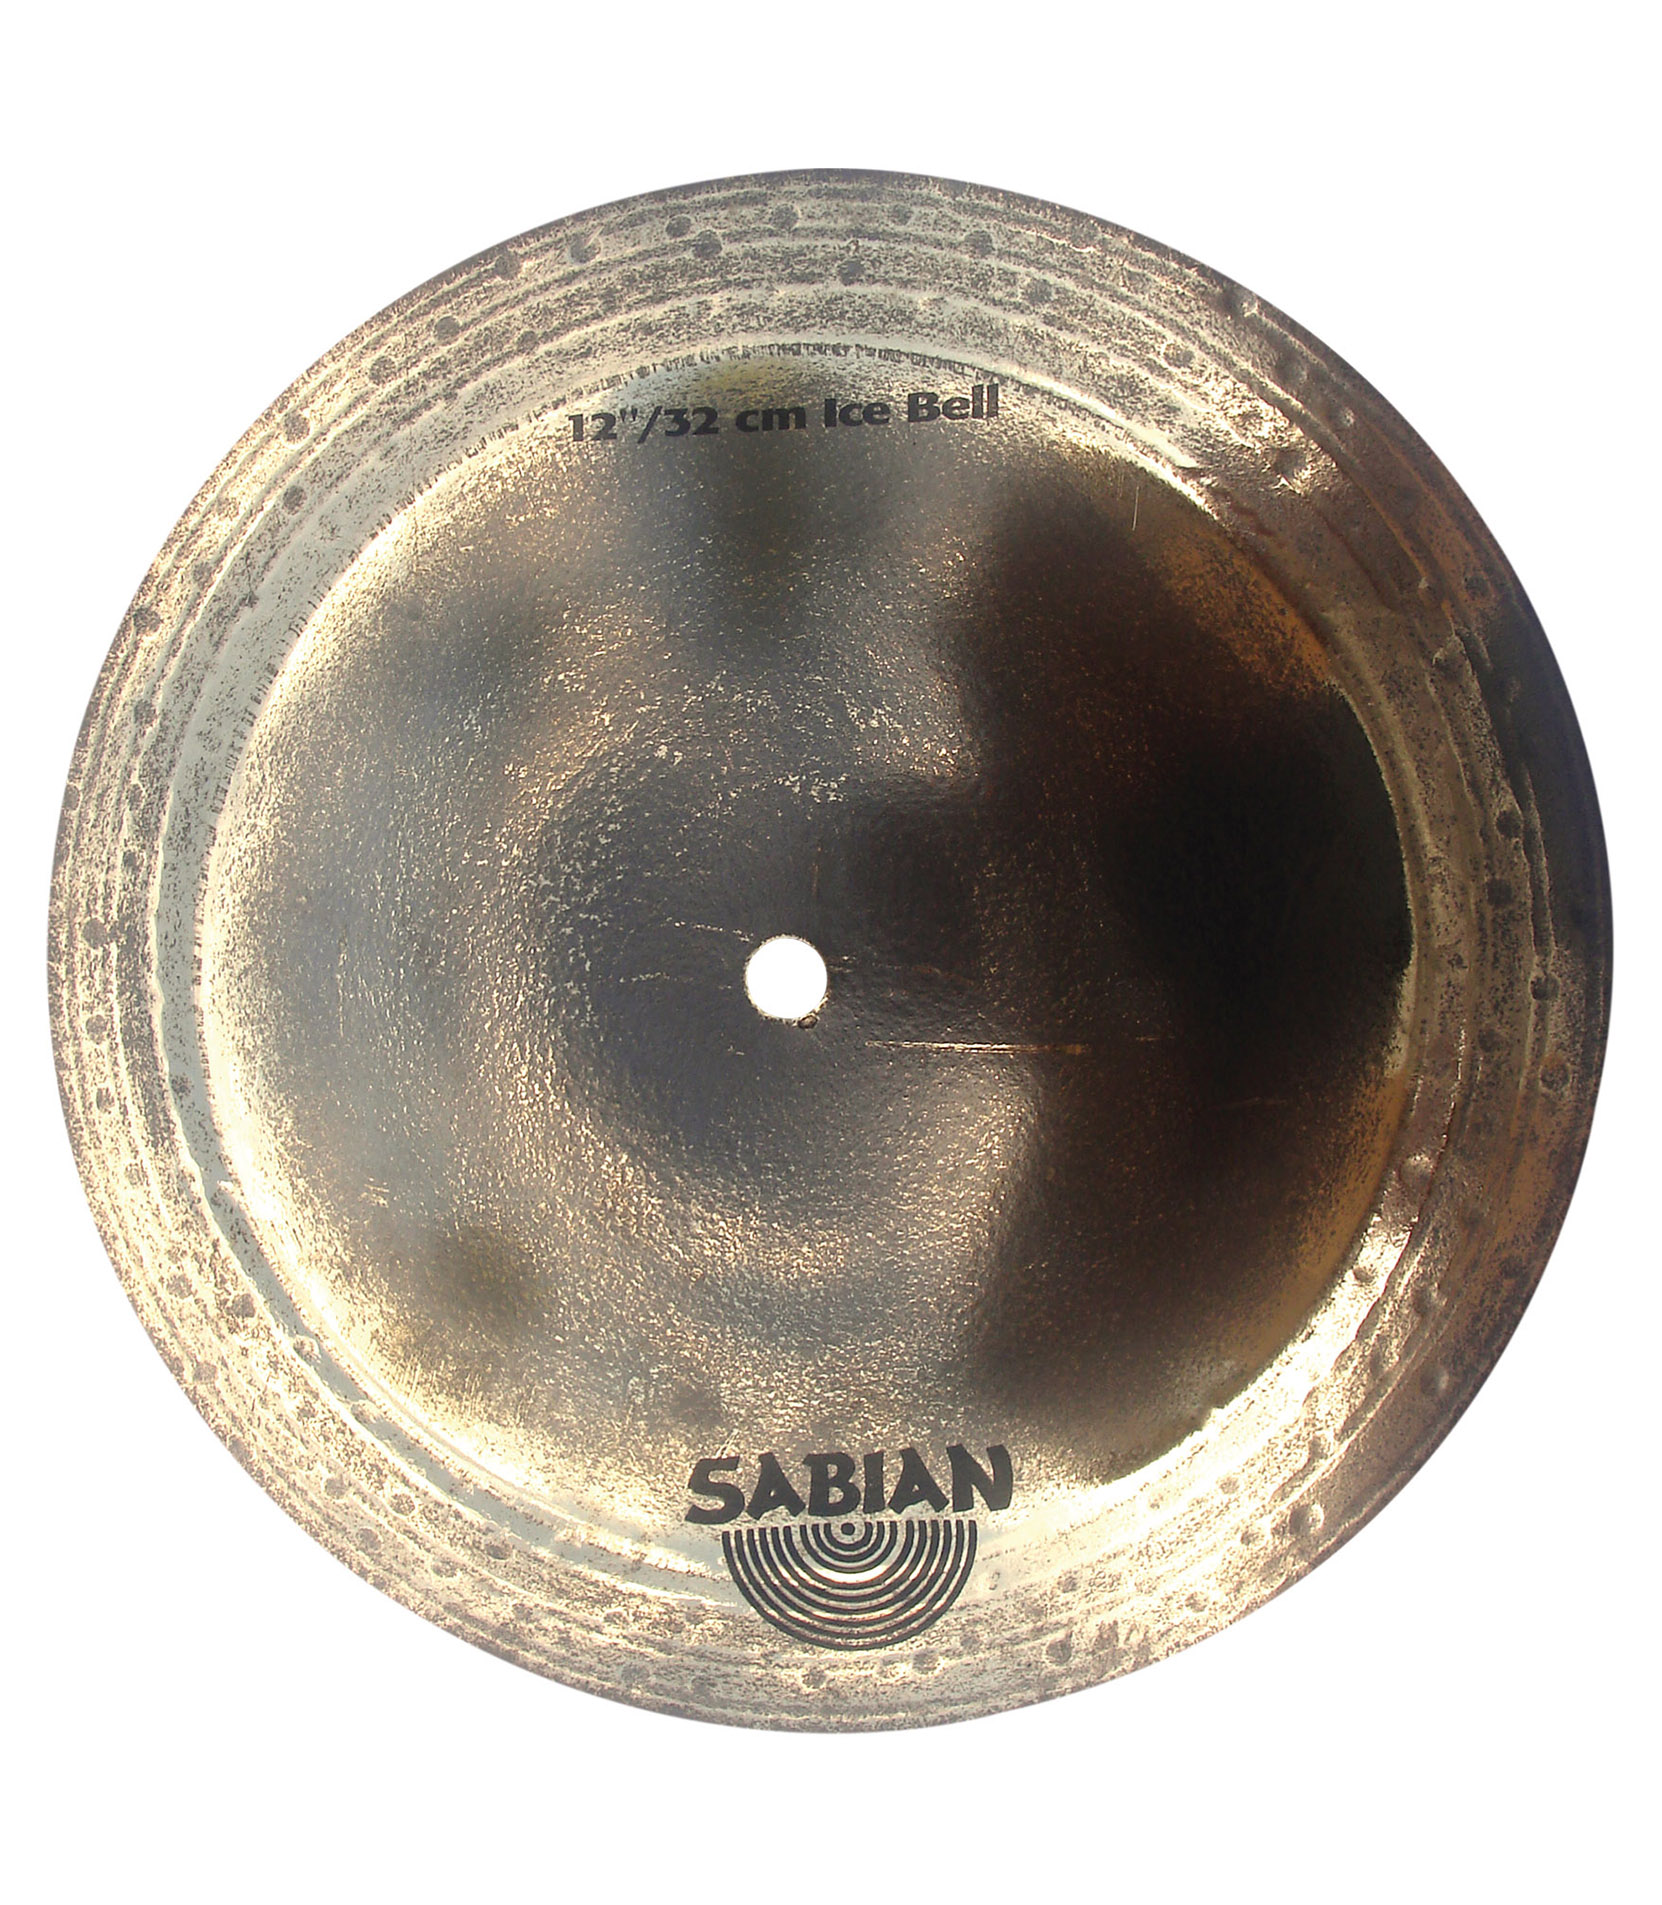 Buy Sabian - 12 Ice Bell